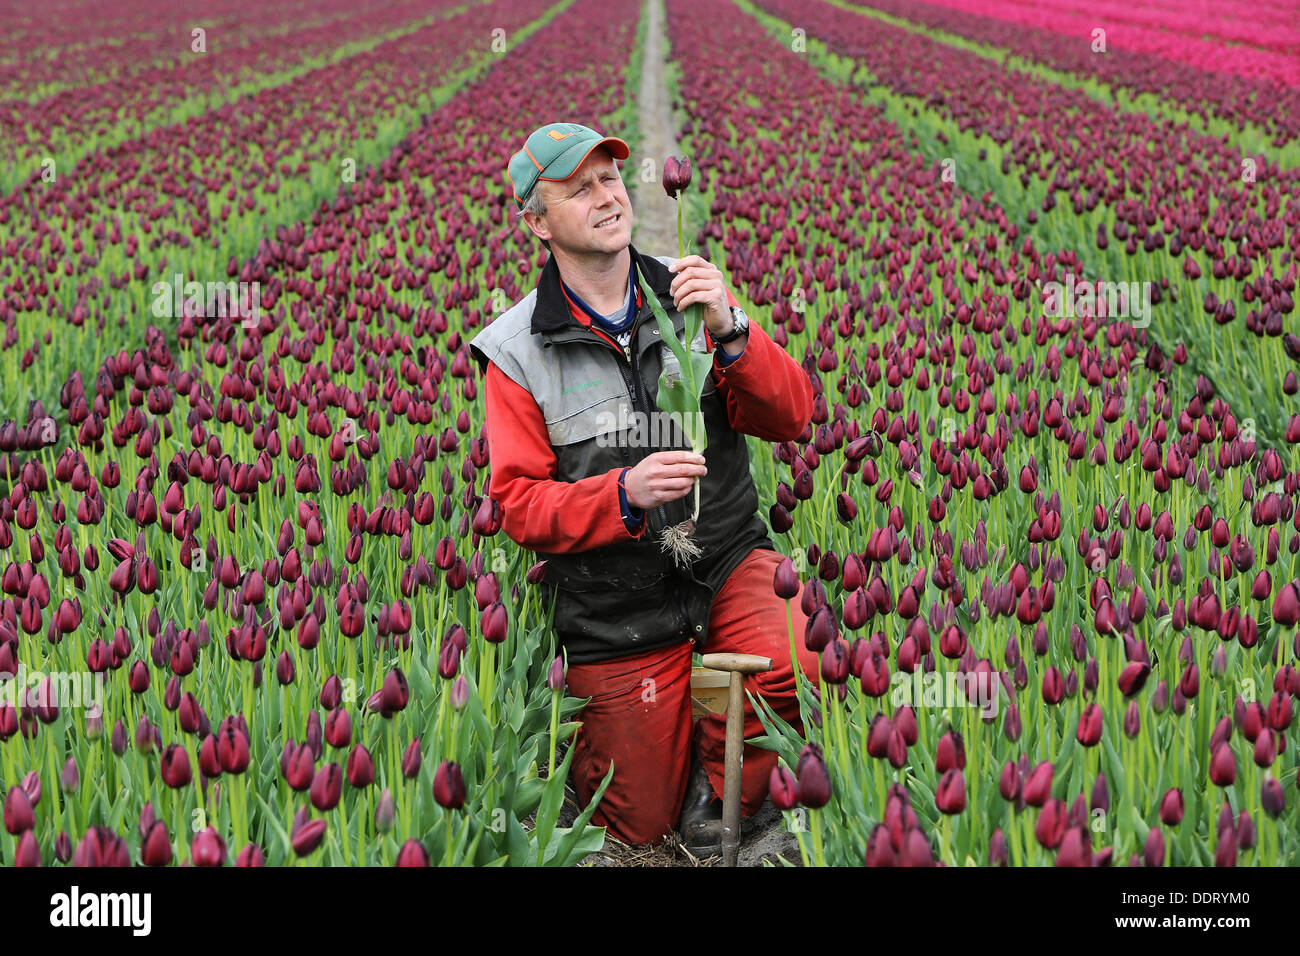 BREEZAND - Joost Pennings removes Tuesday the less beautiful tulips from his field with 'success flowers': the Vincent van Gogh. The patented and exclusive dark crispa color appears to be a huge hit at the visitors to the Van Gogh Museum in Amsterdam. The Van Gogh tulip is for sale at the museum as a bulb. J. S. Pennings-De Bilt from Breezand in the Northern part of the Netherlands is the only breeder in the Netherlands with breeding right of the Van Gogh tulip. To ensure the quality, the poor tulips are all selected out. The tulip bulbs are harvested in the summer. Foto: VidiPhoto dpa - NETHE - Stock Image